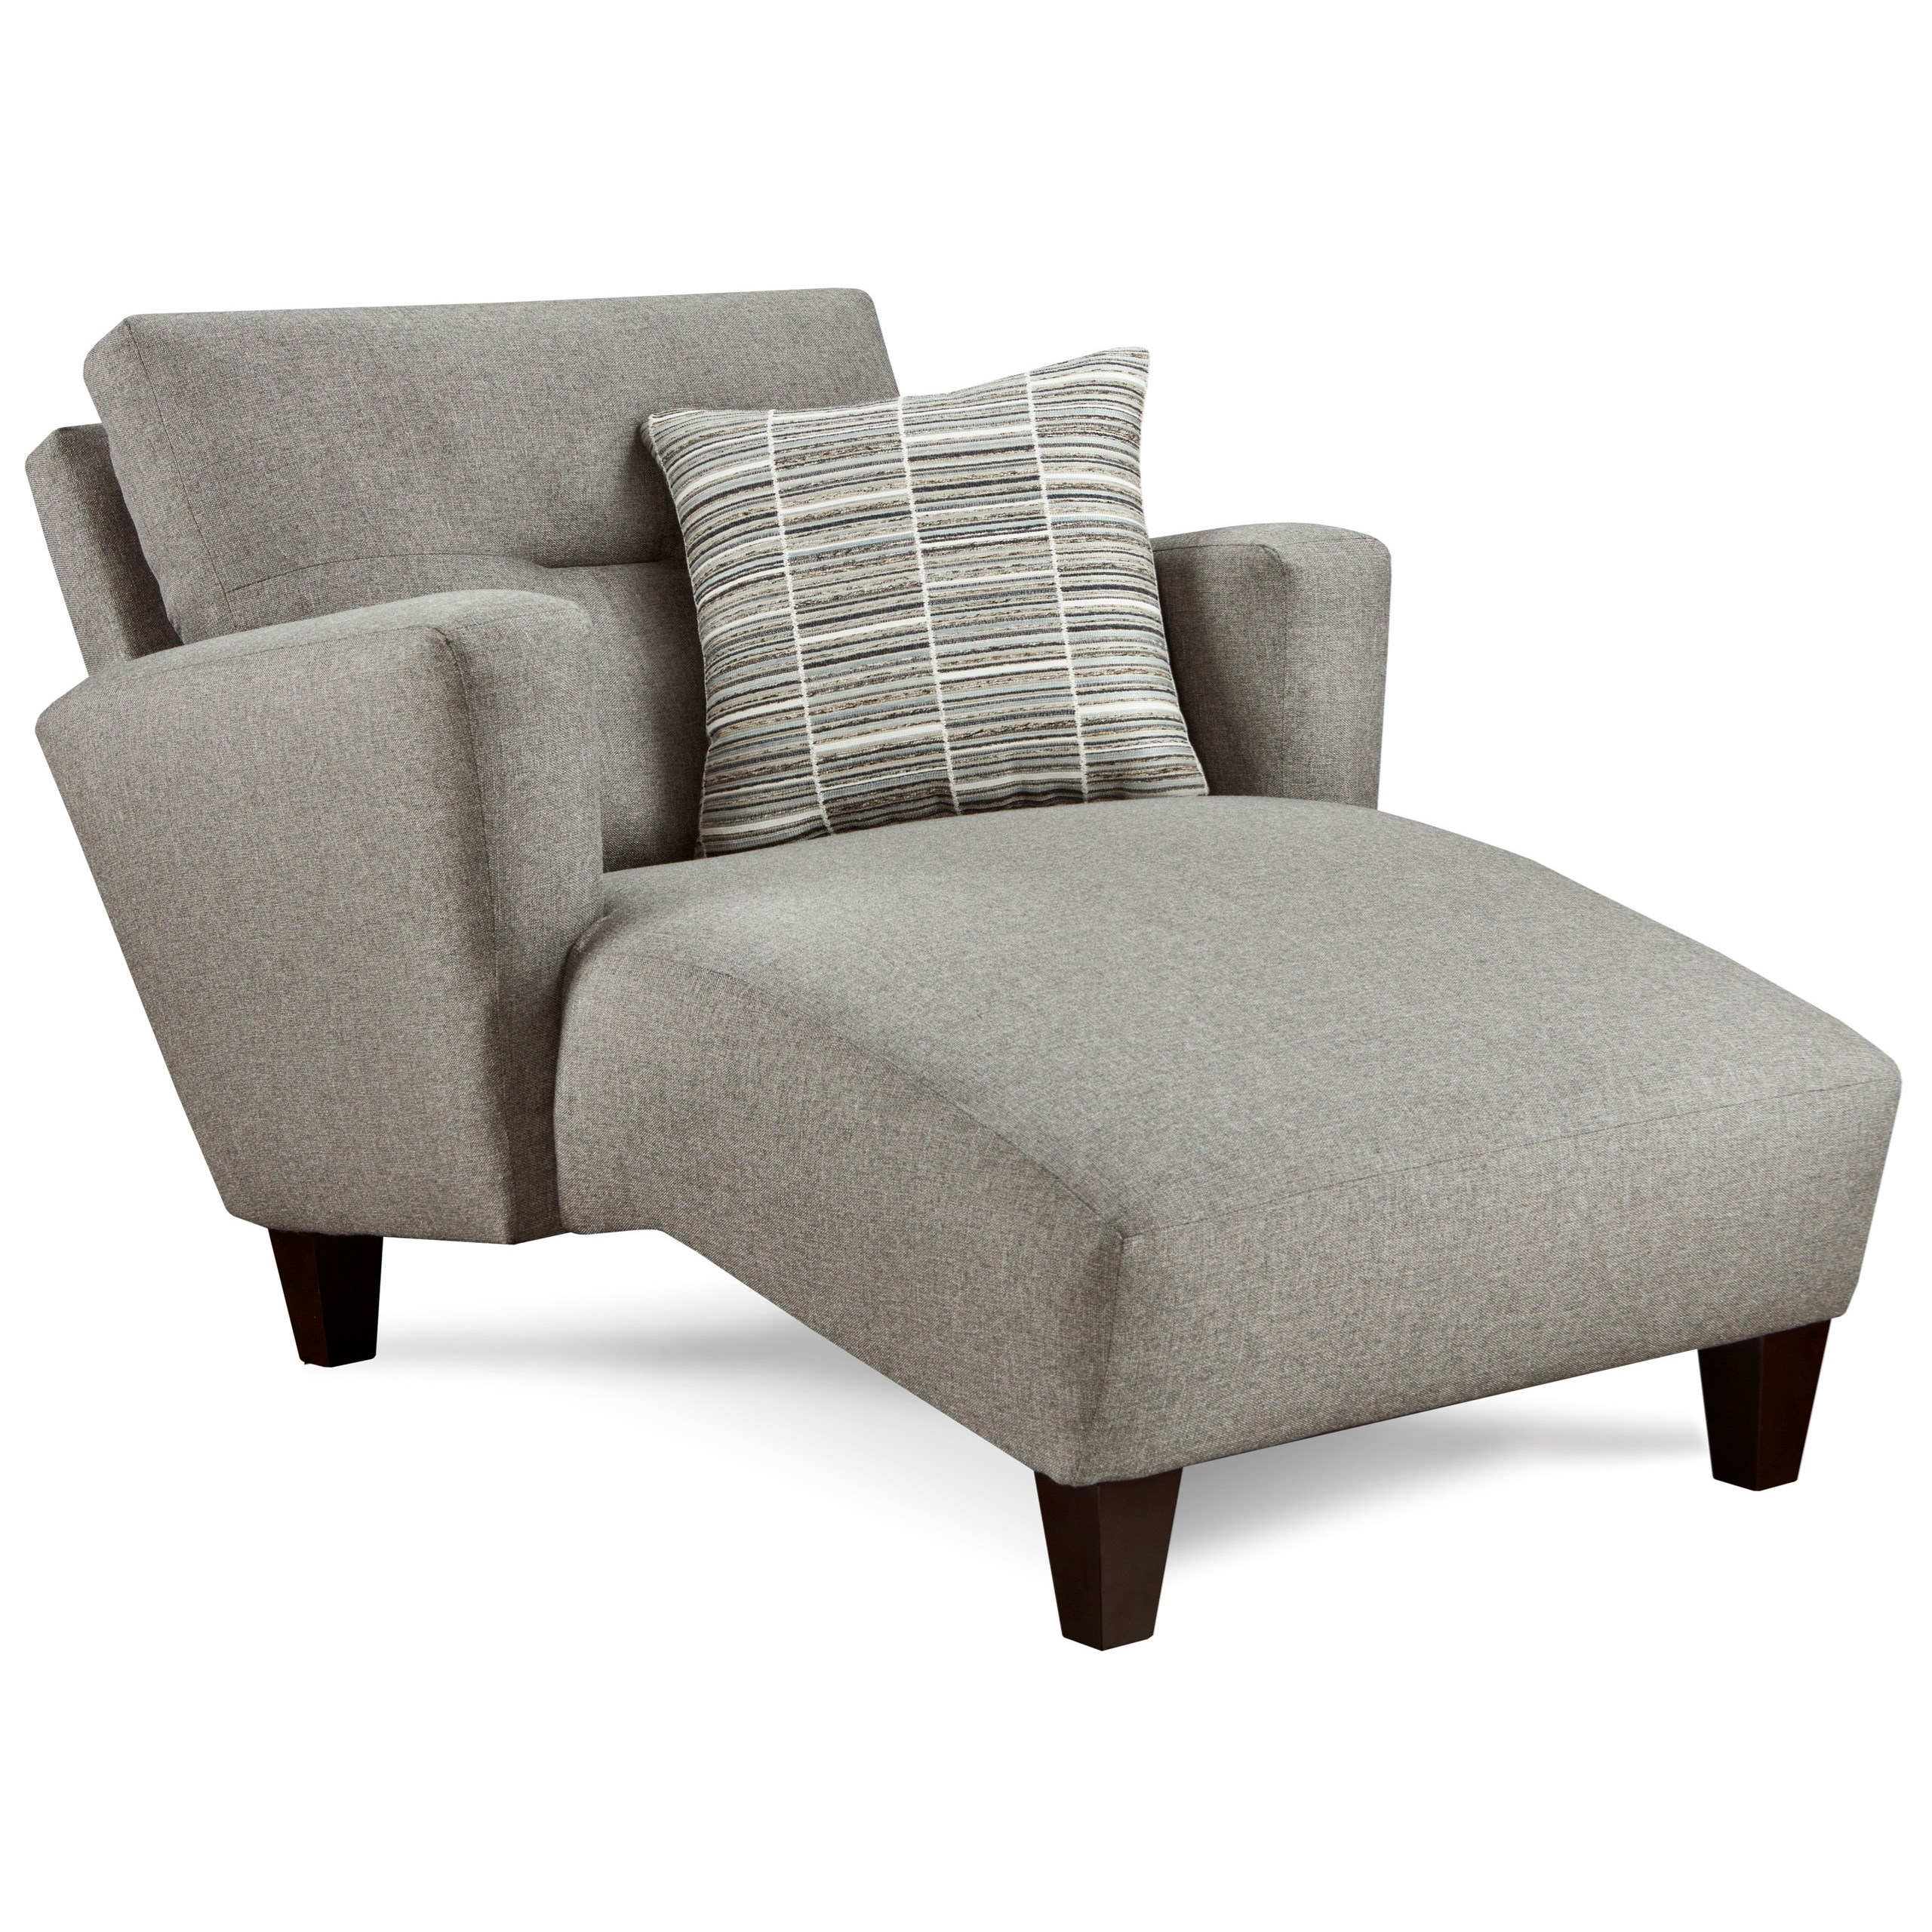 8210 Chaise by Fusion Furniture at Miller Waldrop Furniture and Decor